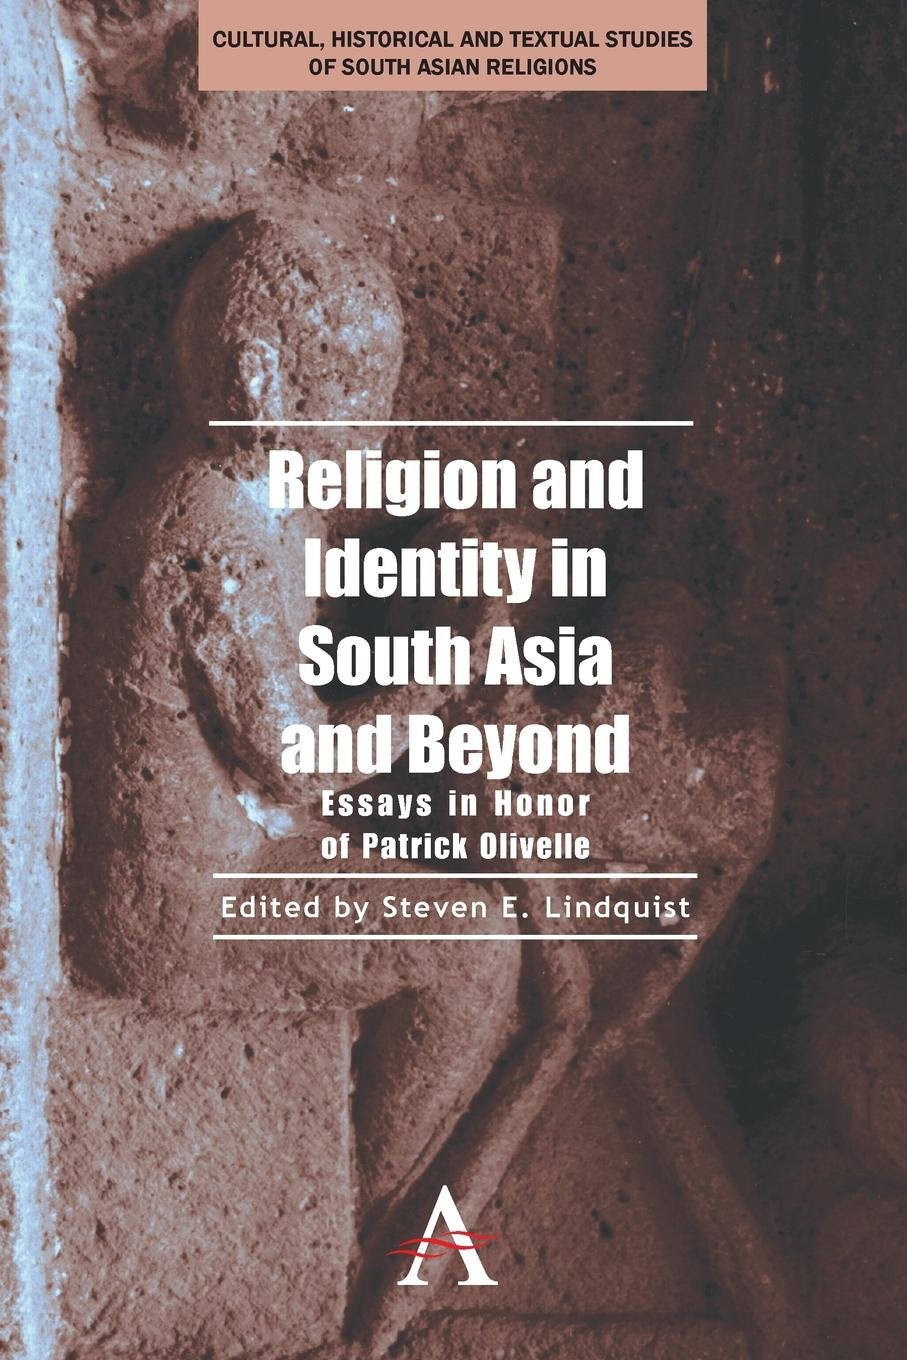 Download Religion and Identity in South Asia and Beyond: Essays in Honor of Patrick Olivelle (Cultural, Historical and Textual Studies of South Asian Religions) pdf